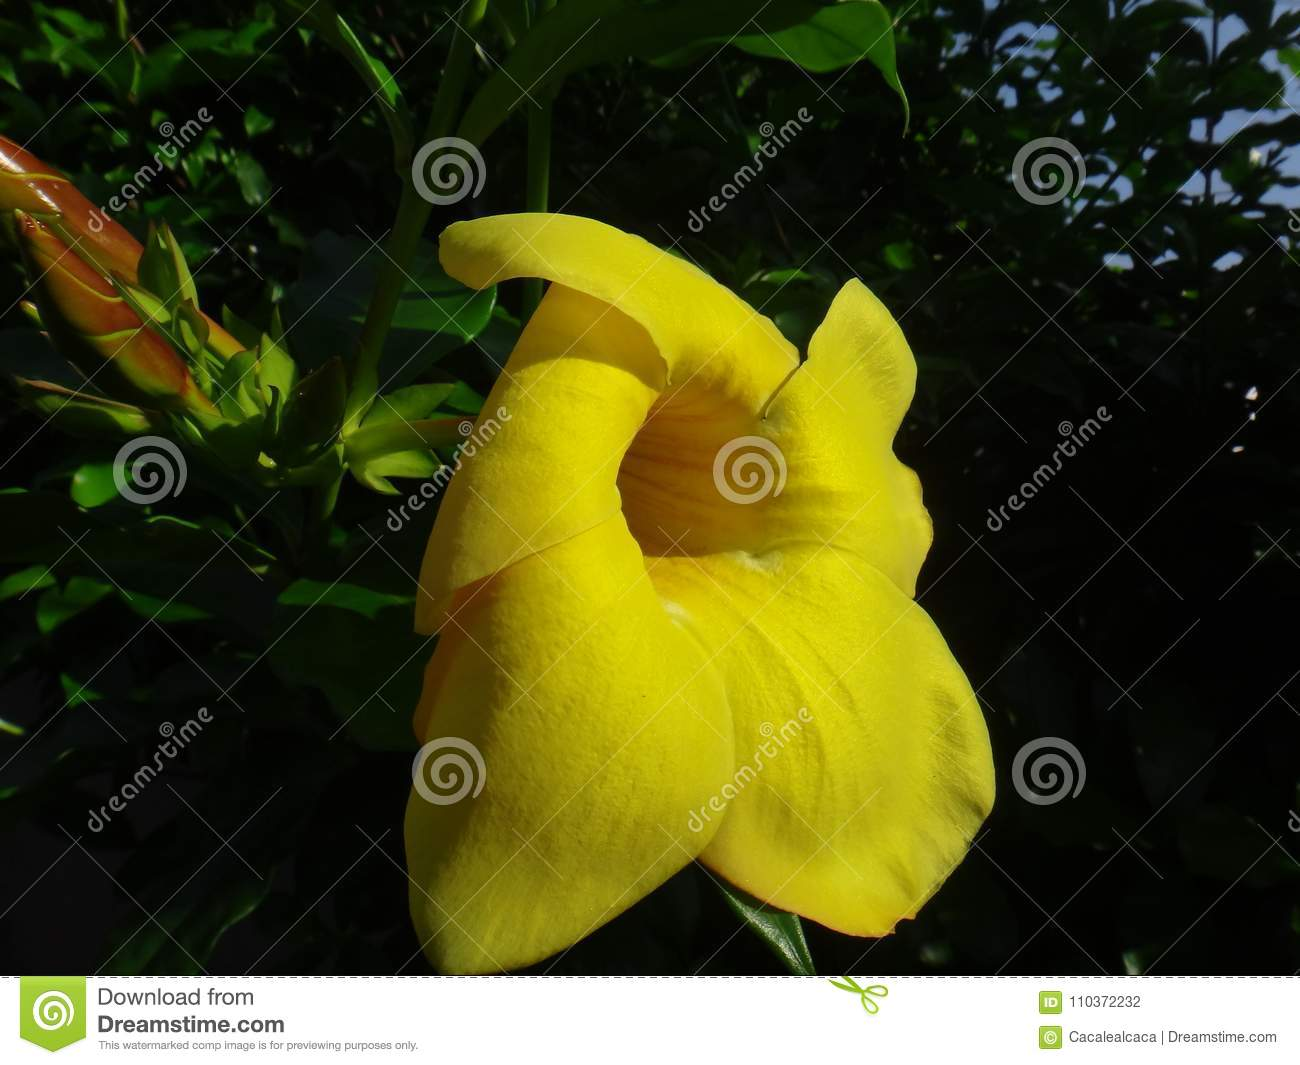 Yellow Flower Of The Species Allamanda Cathartica Stock Photo